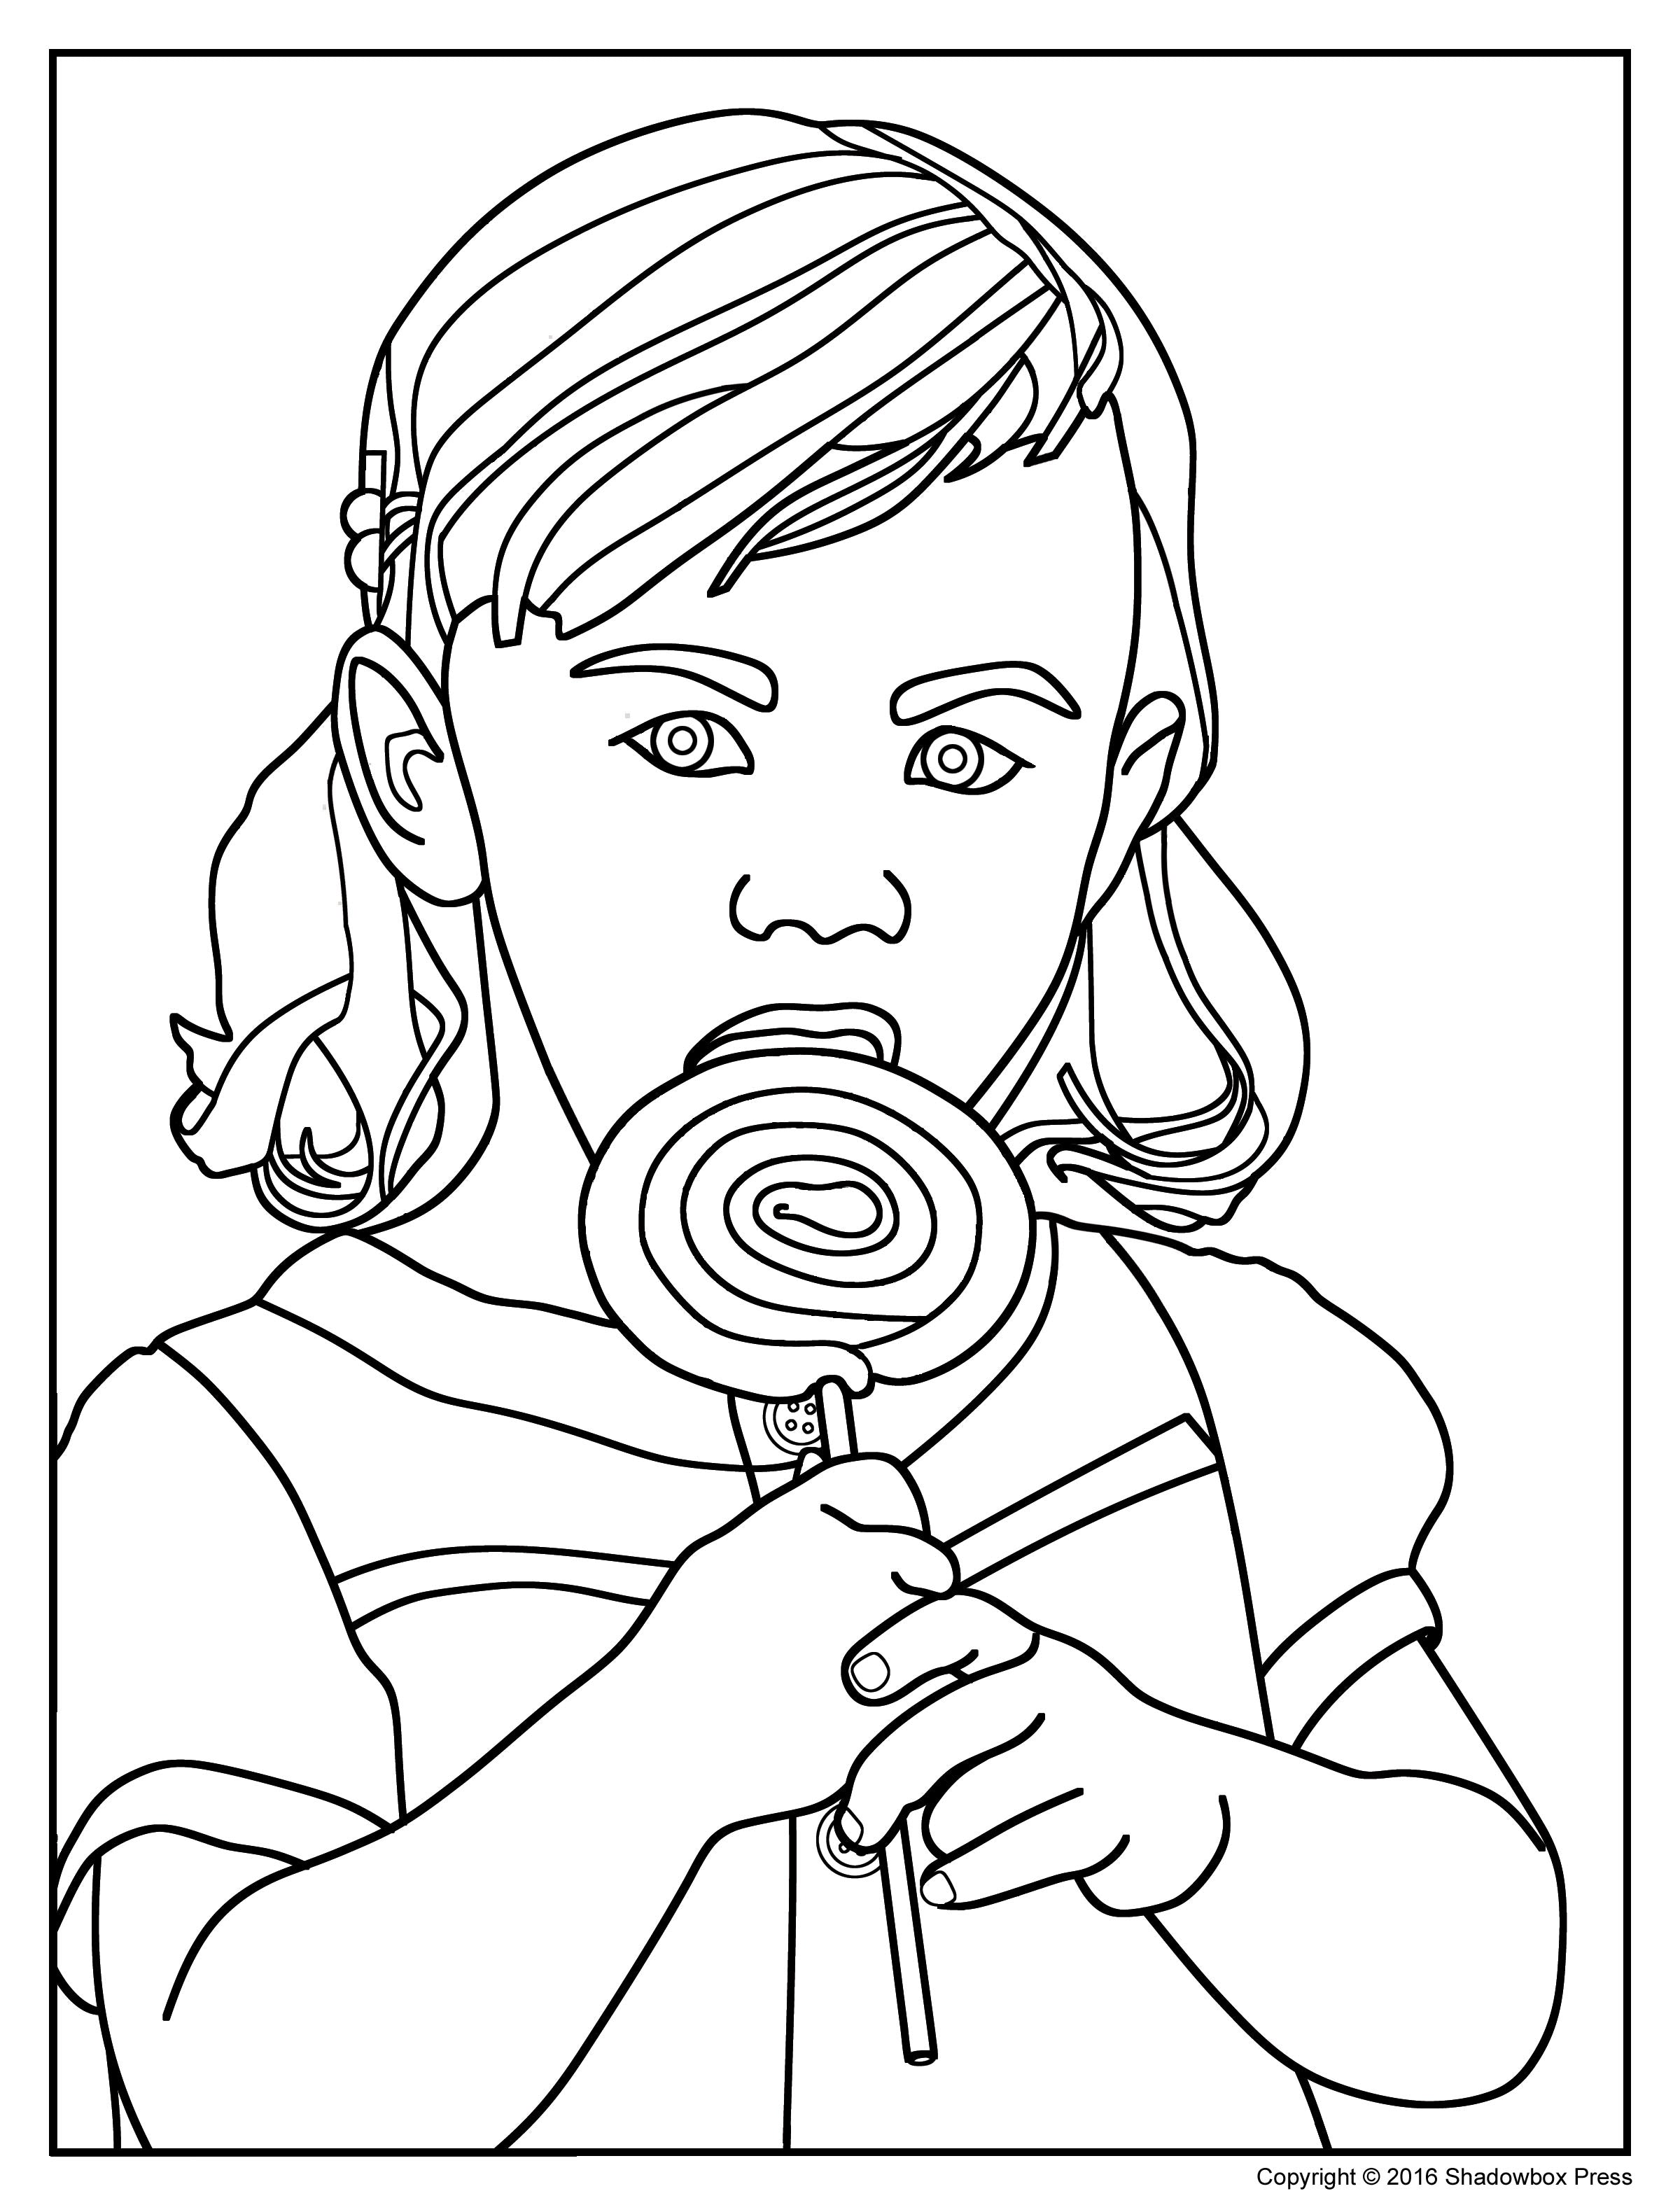 Free Downloadable Coloring Pages for Adults with Dementia ...